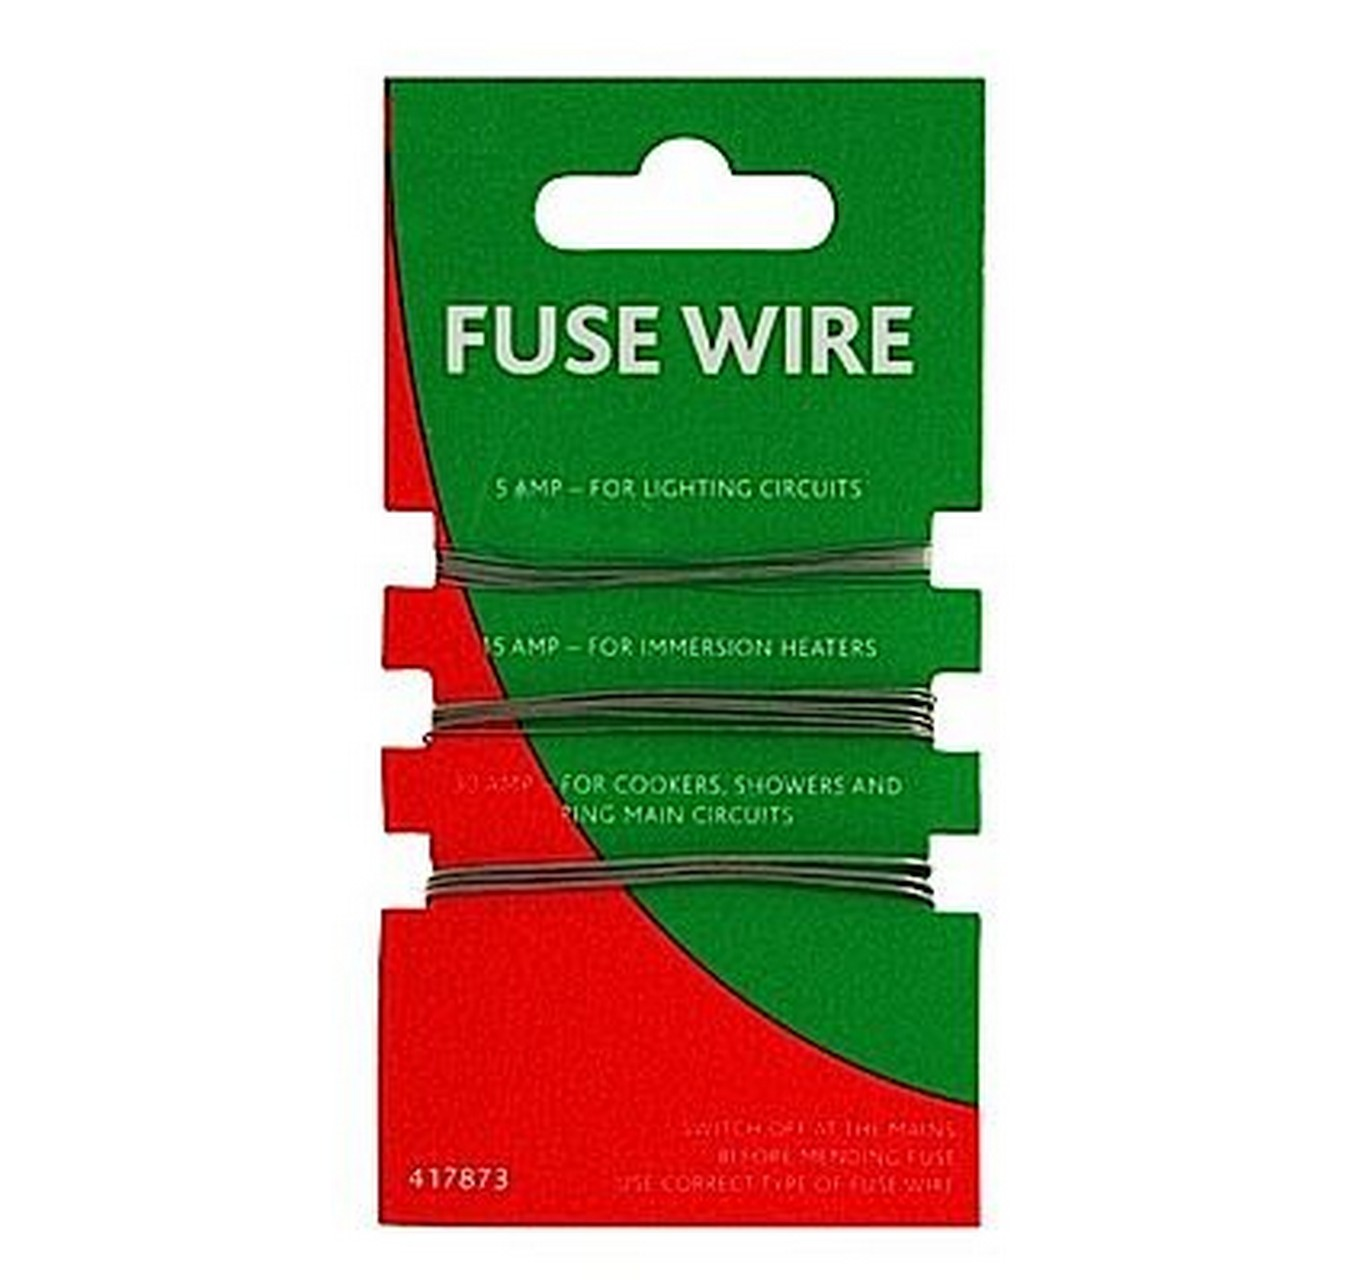 Fuse Wire 5, 15 & 30amp